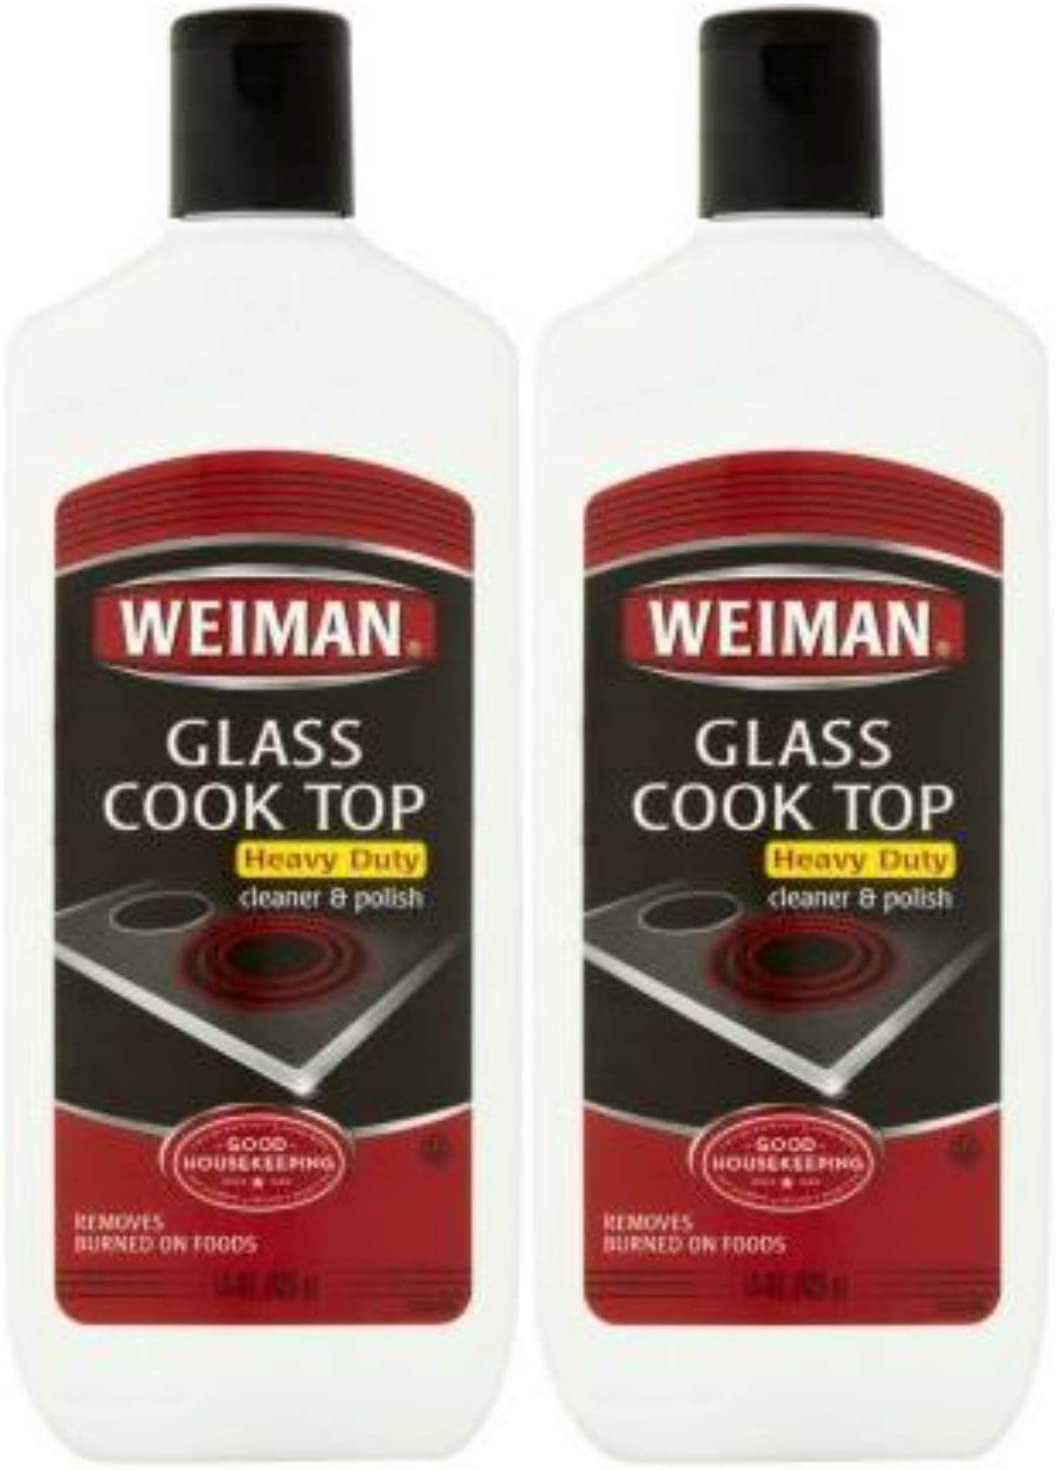 Weiman Glass Cook Top Heavy Duty Cleaner & Polish,Pack of 2 ( 15 oz Each )